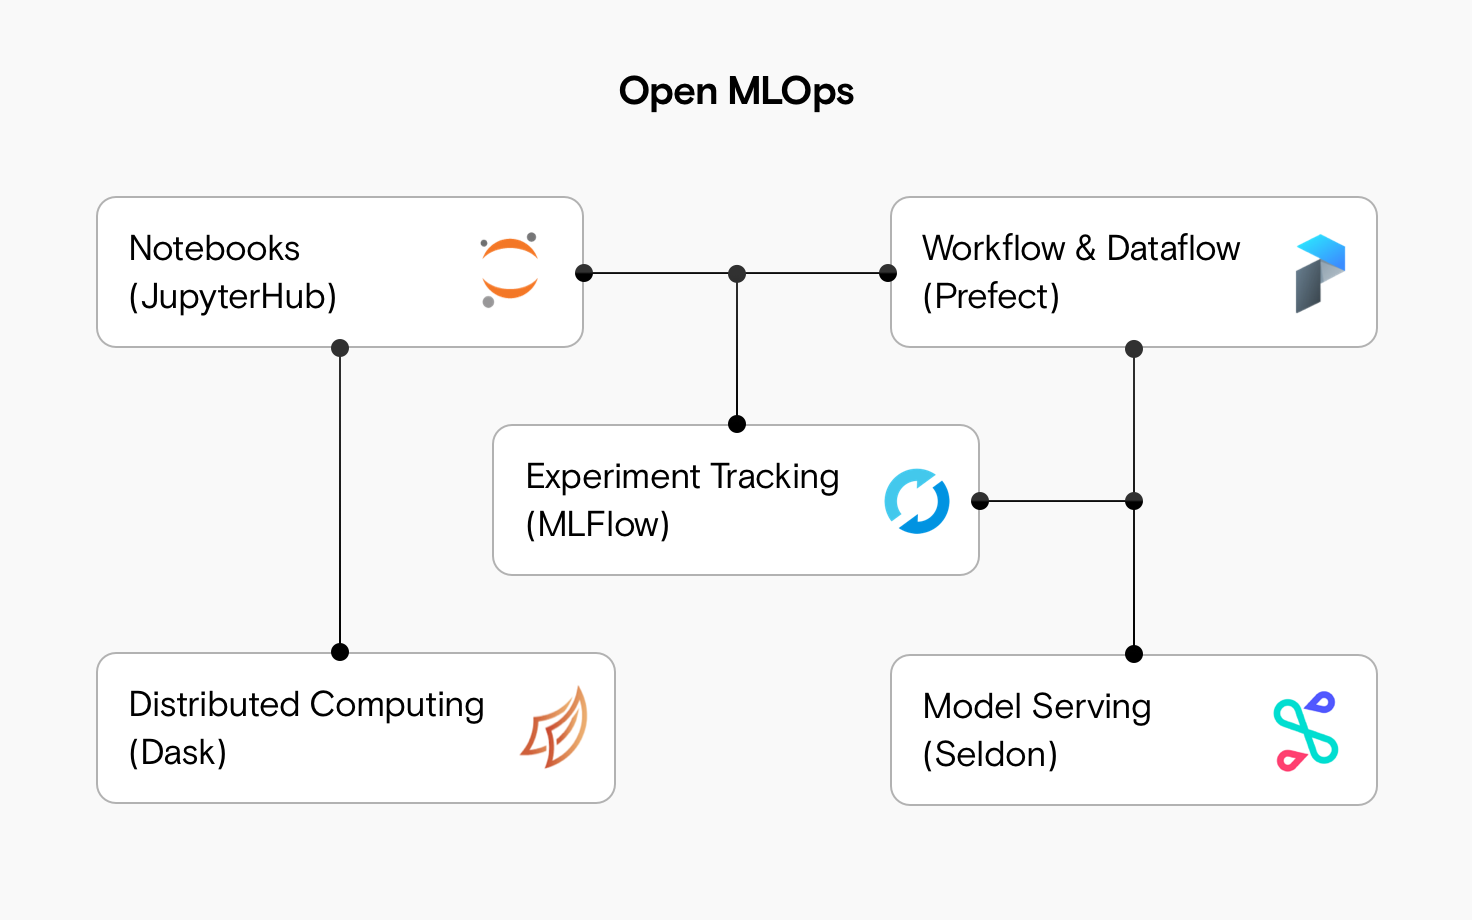 Notebooks (JupyterHub), workflow and dataflow (Prefect), experiment tracking (MLFlow), distributed computing (dask) and model serving (Seldon).